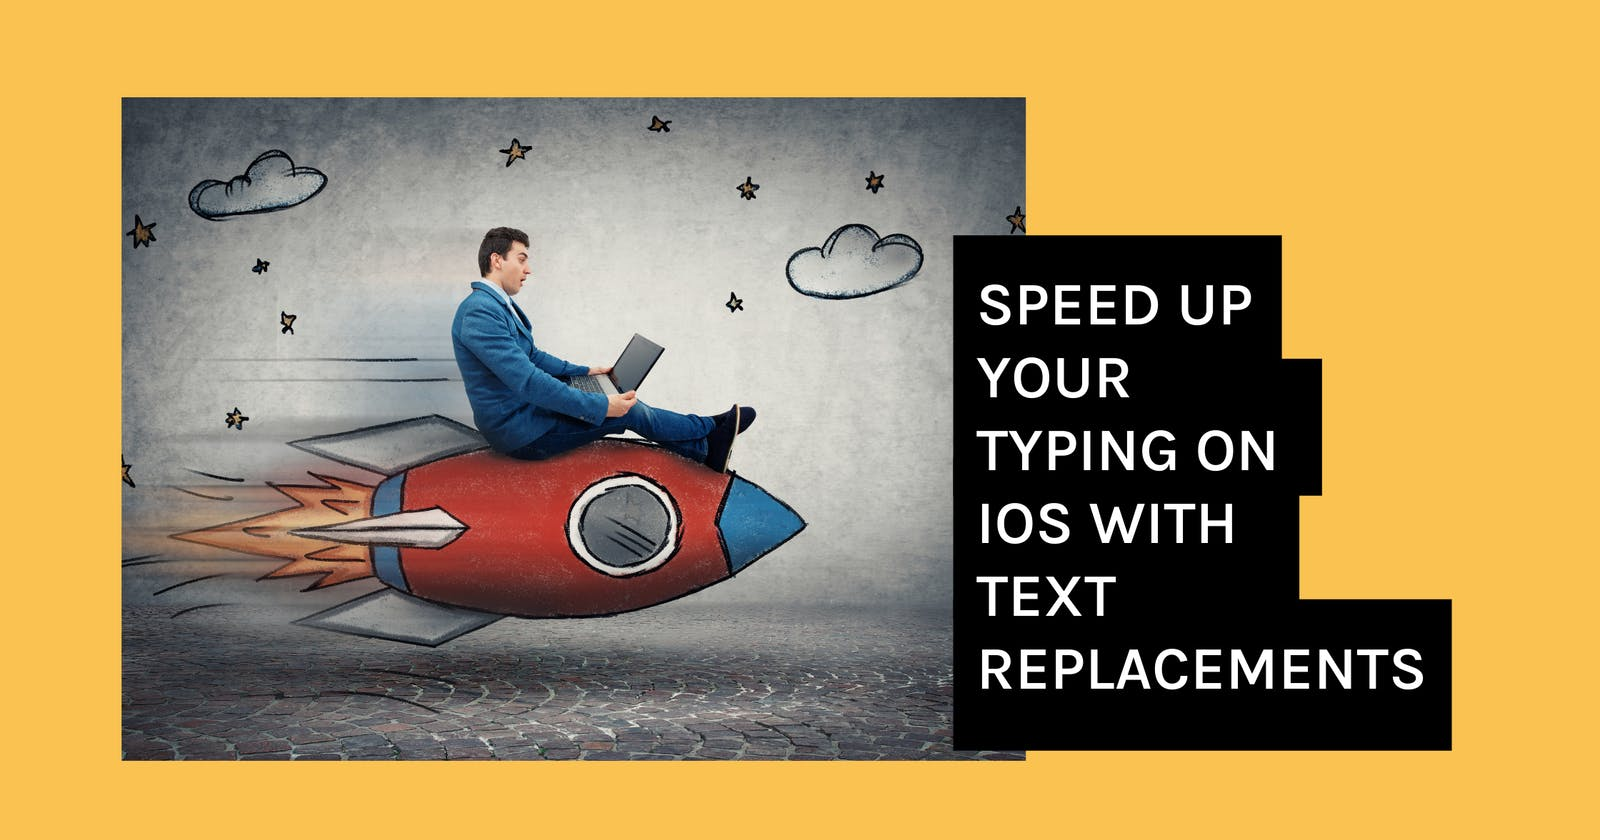 Speed up your Typing on iOS with Text Replacements